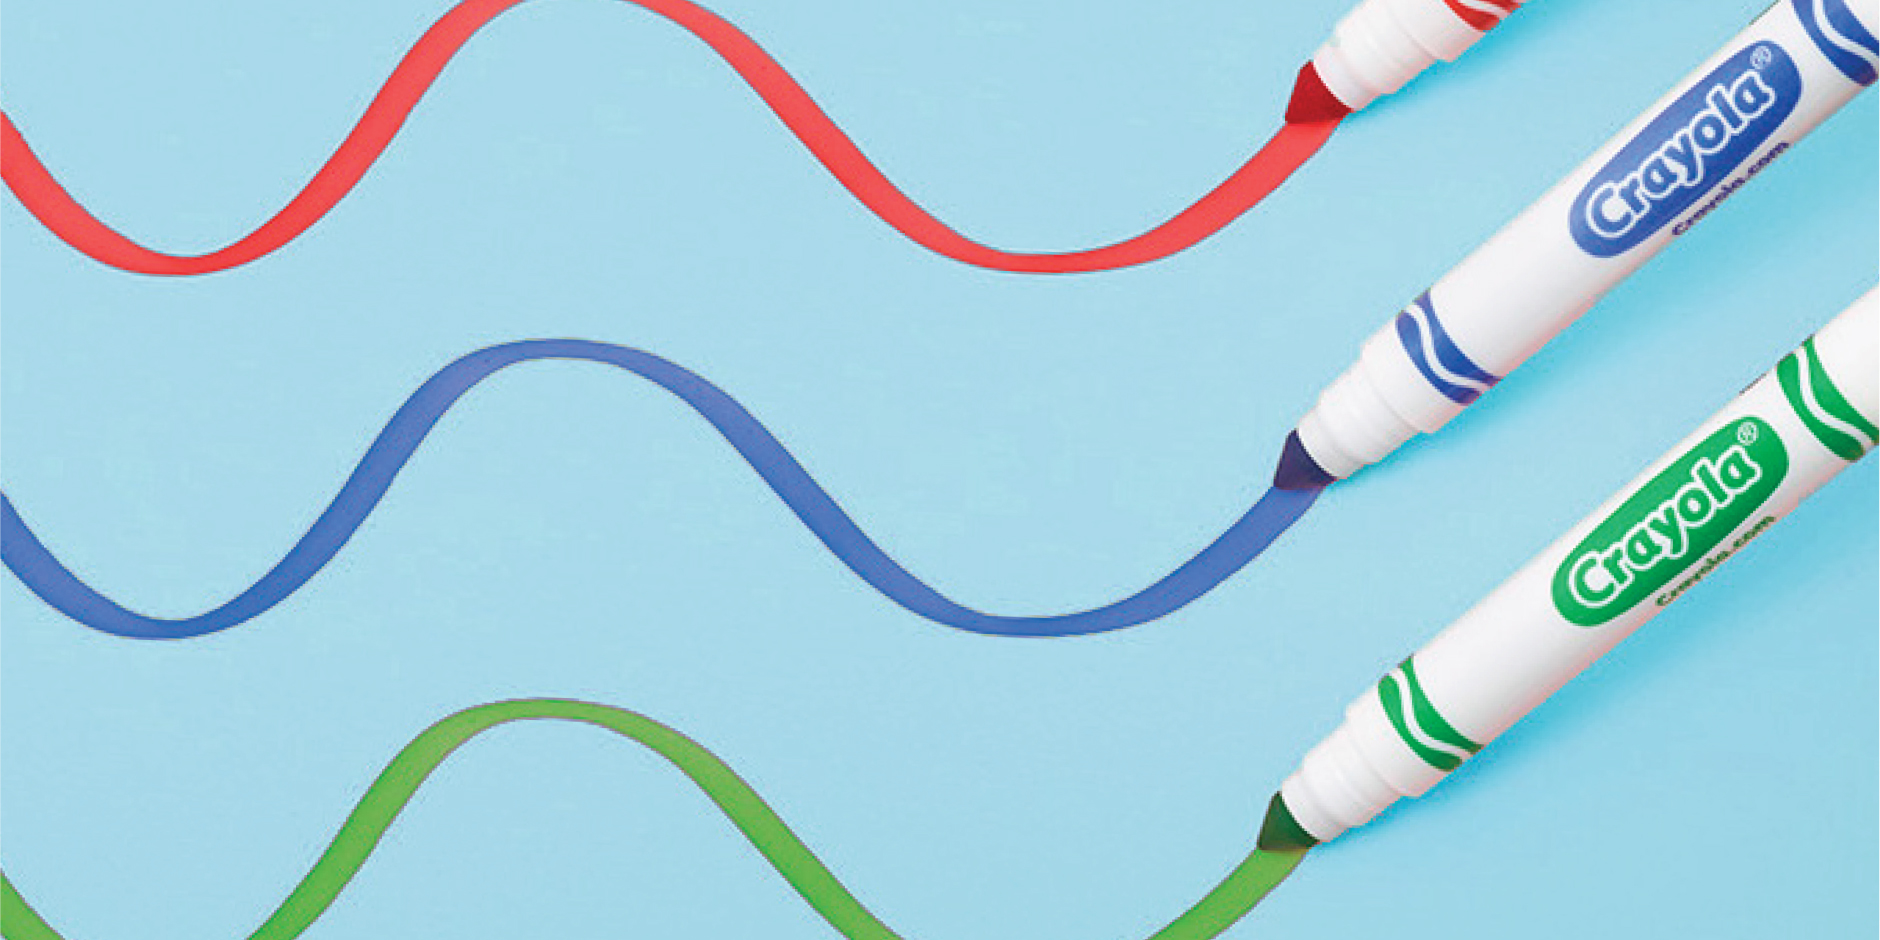 Three markers draw wavy lines on a blue background